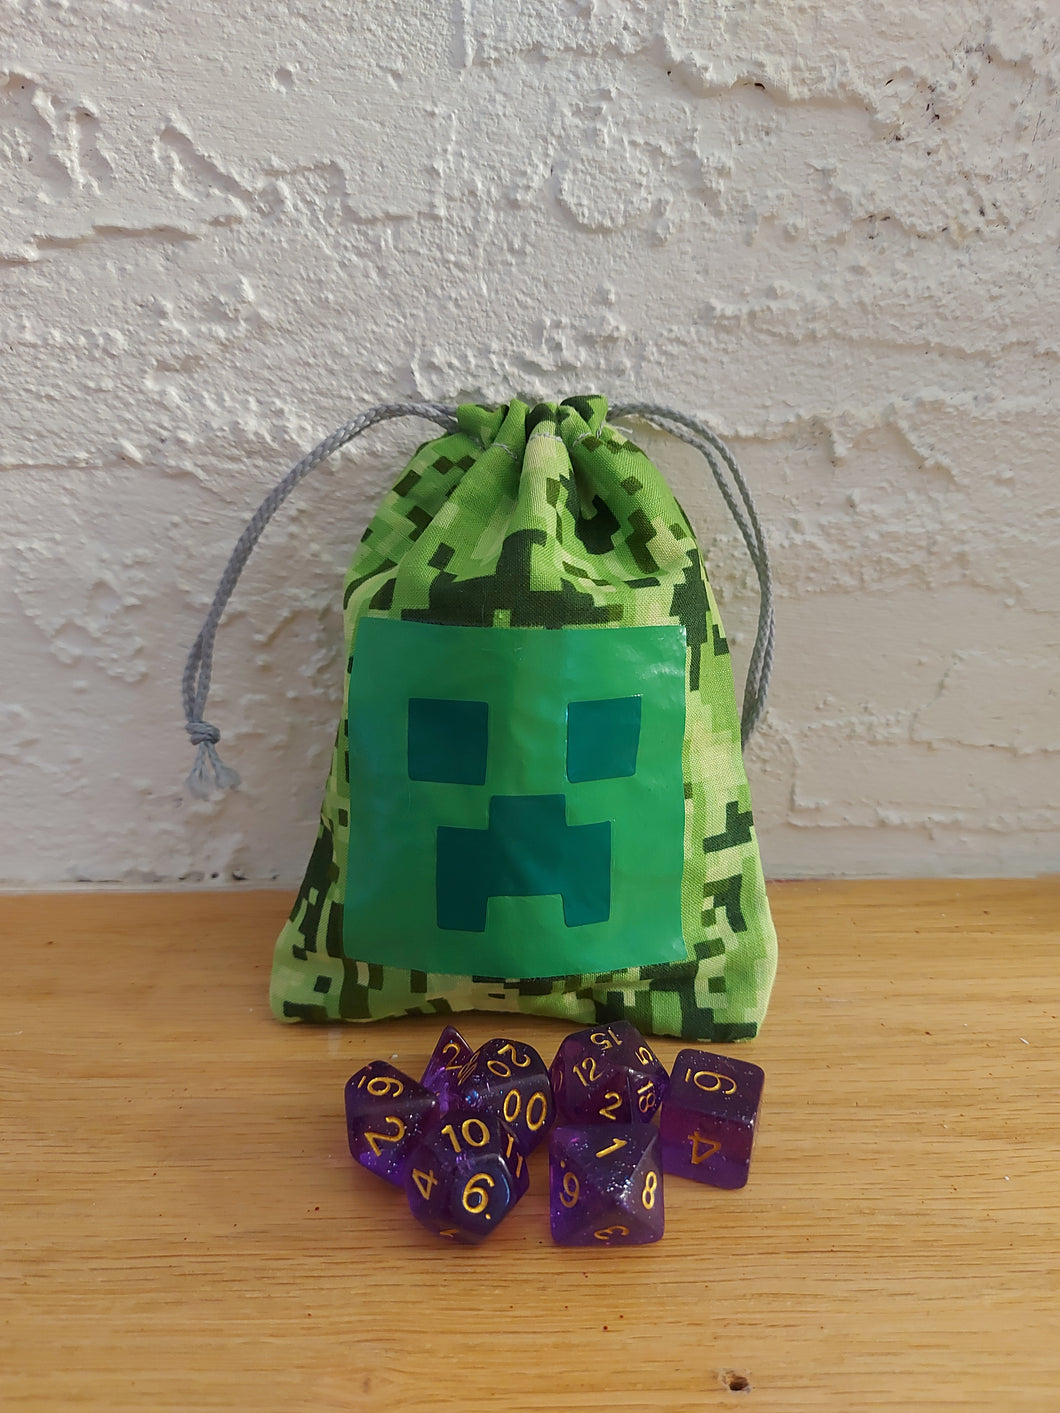 Minecraft Creeper Bag of Holding